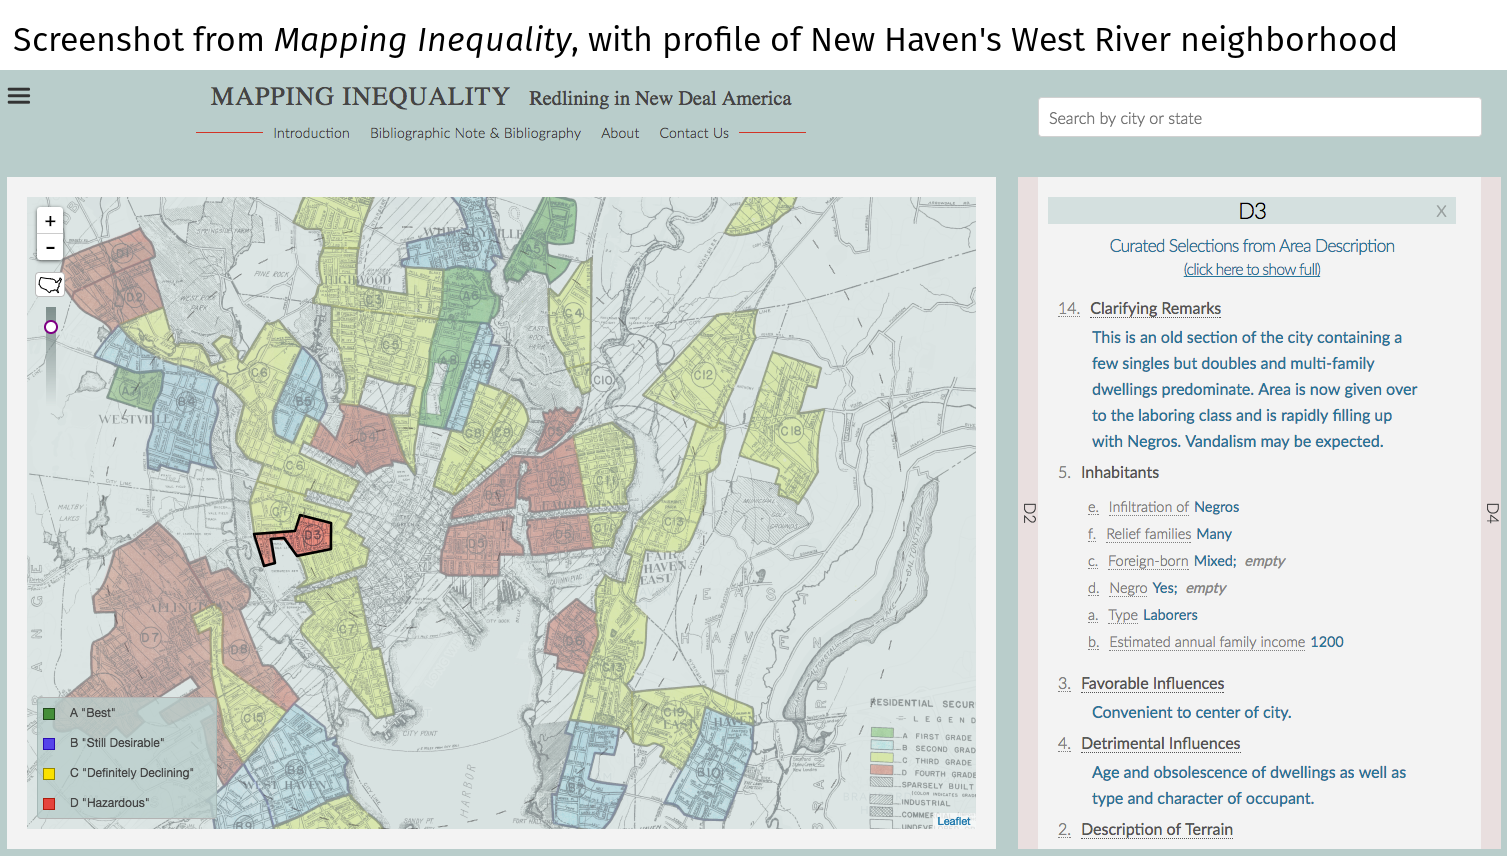 HOLC data mapping inequality screenshot University Richmond